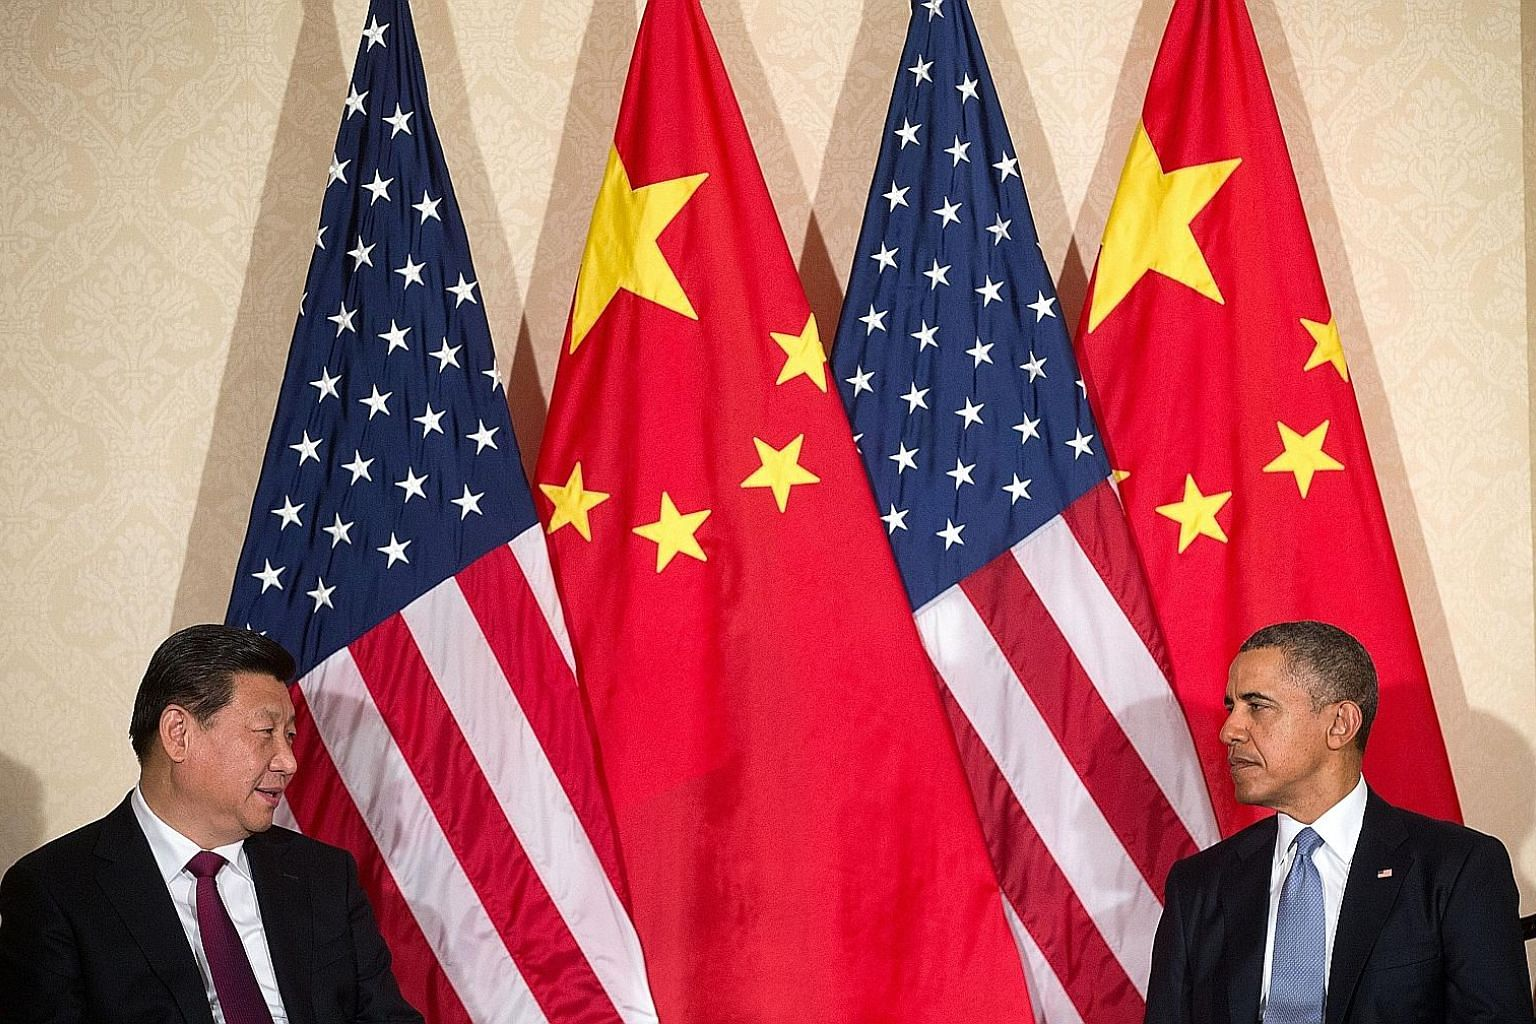 Mr Xi and Mr Obama at a meeting in the Netherlands in 2014. As America's influence declines, the steel-willed Chinese leader has risen above a shaky economy and the embarrassment of being all but declared an outlaw in the South China Sea to impose hi